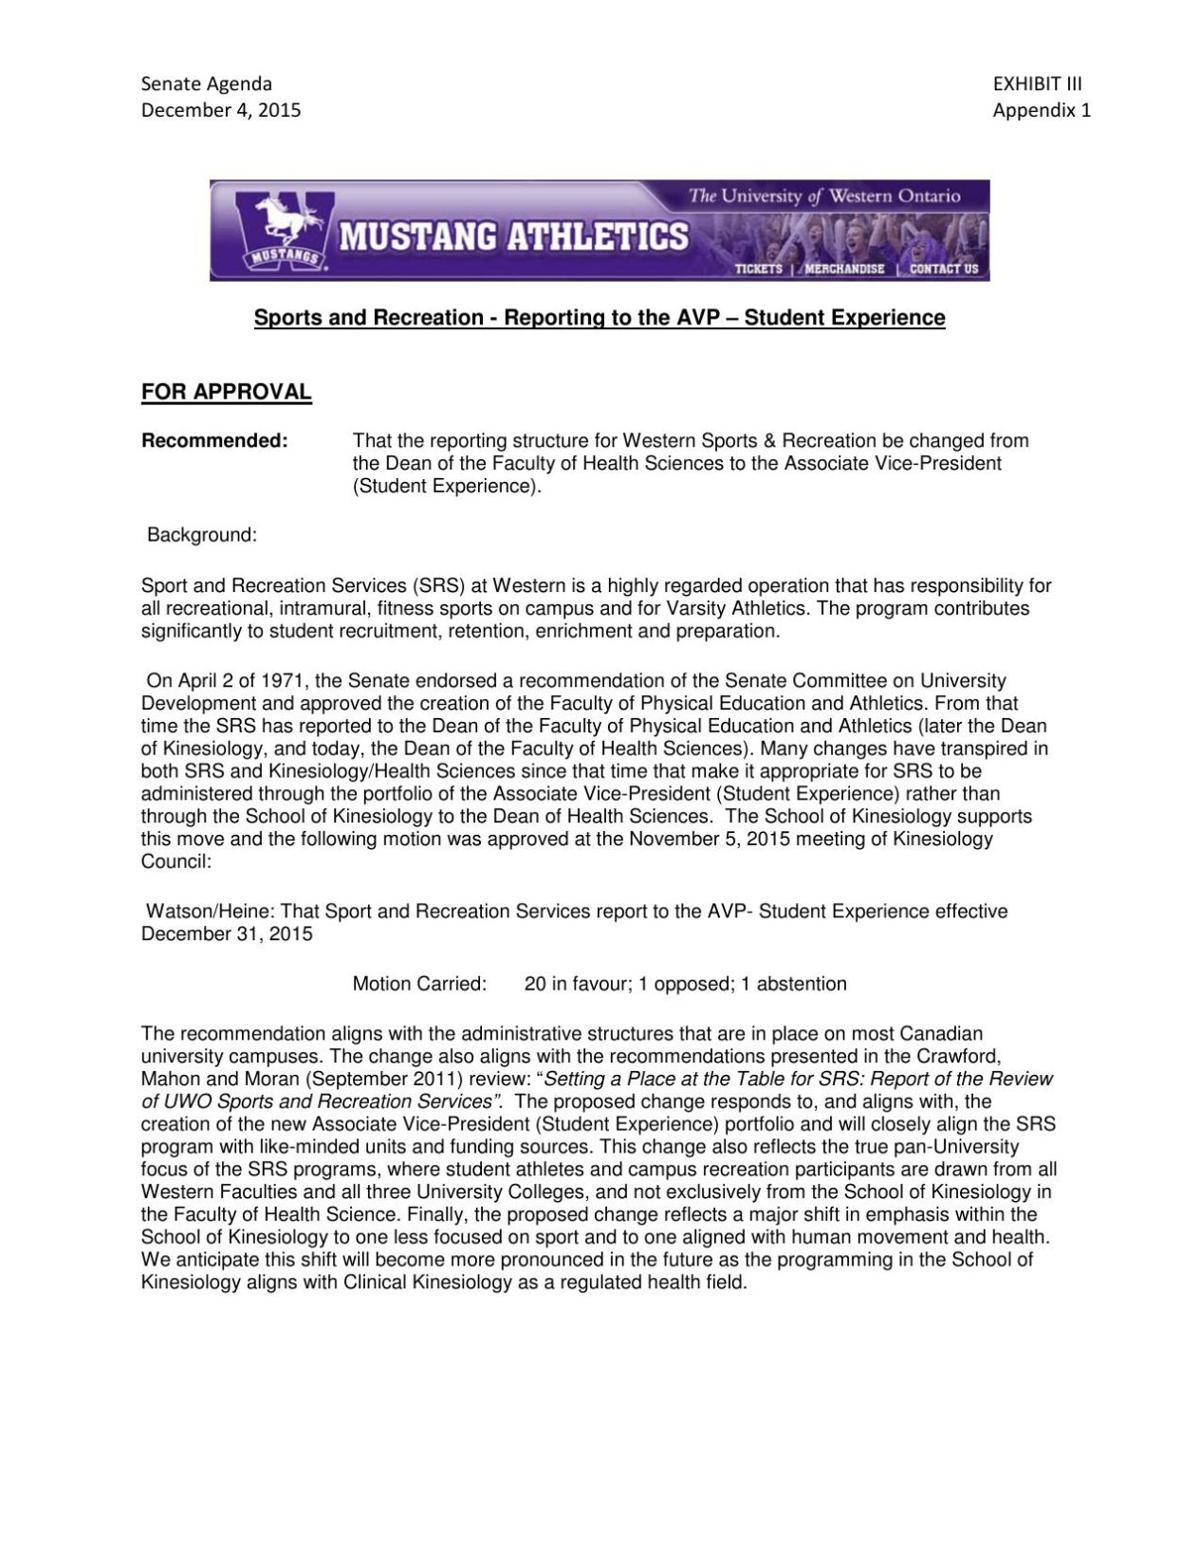 Student recreation reporting structure change